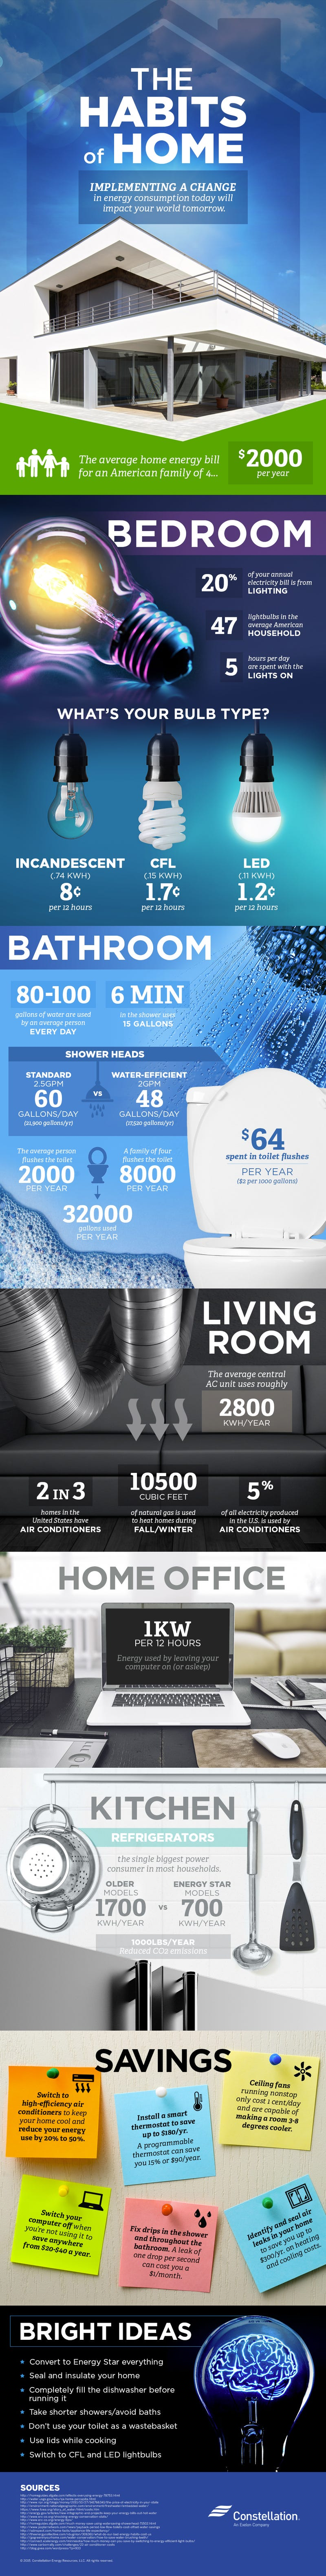 This Graphic Helps You Identify Your Home's Biggest Energy Costs